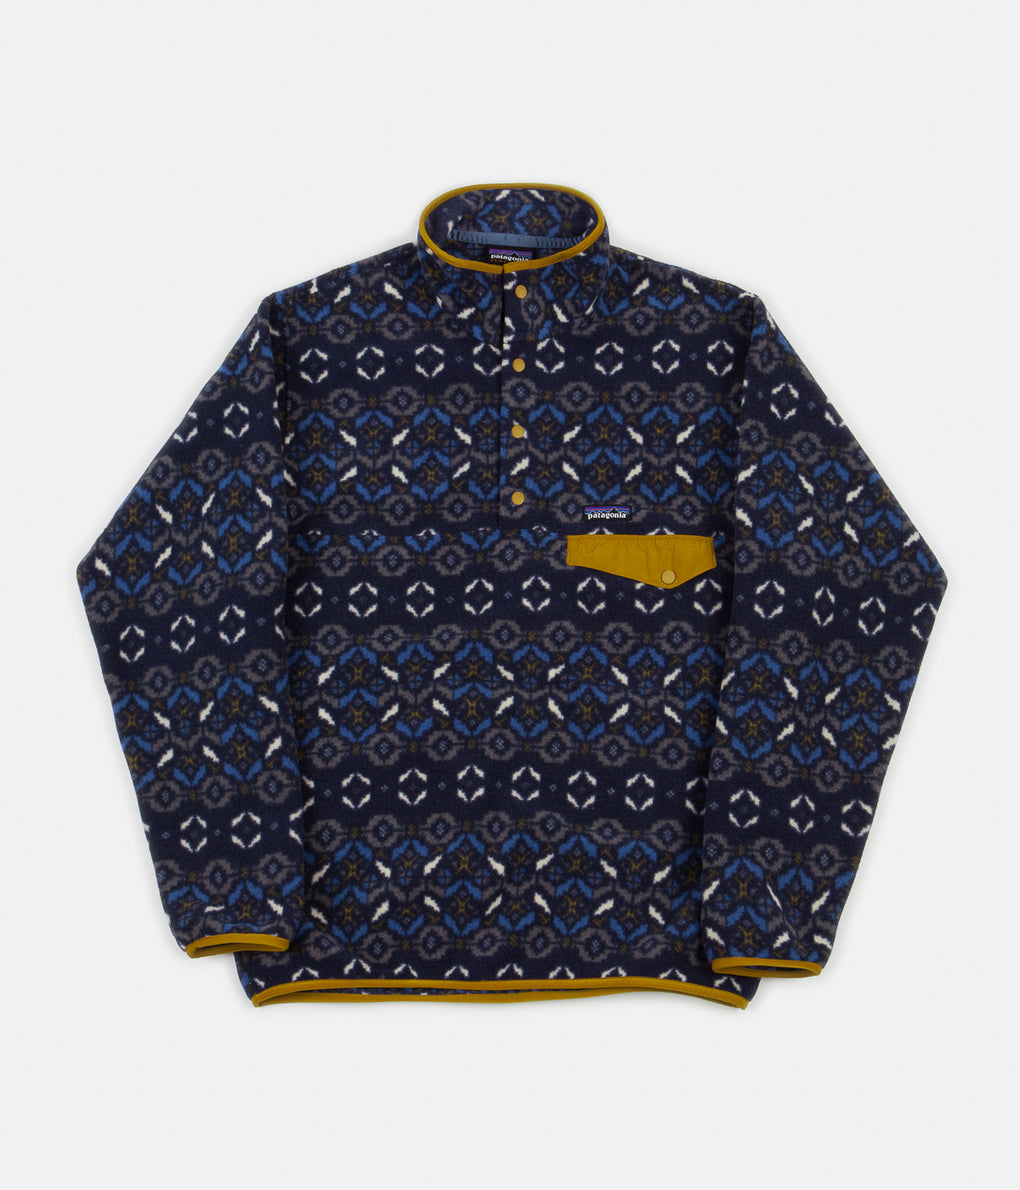 Patagonia Synchilla Snap-T Pullover Jacket - Tundra Cluster: New Navy